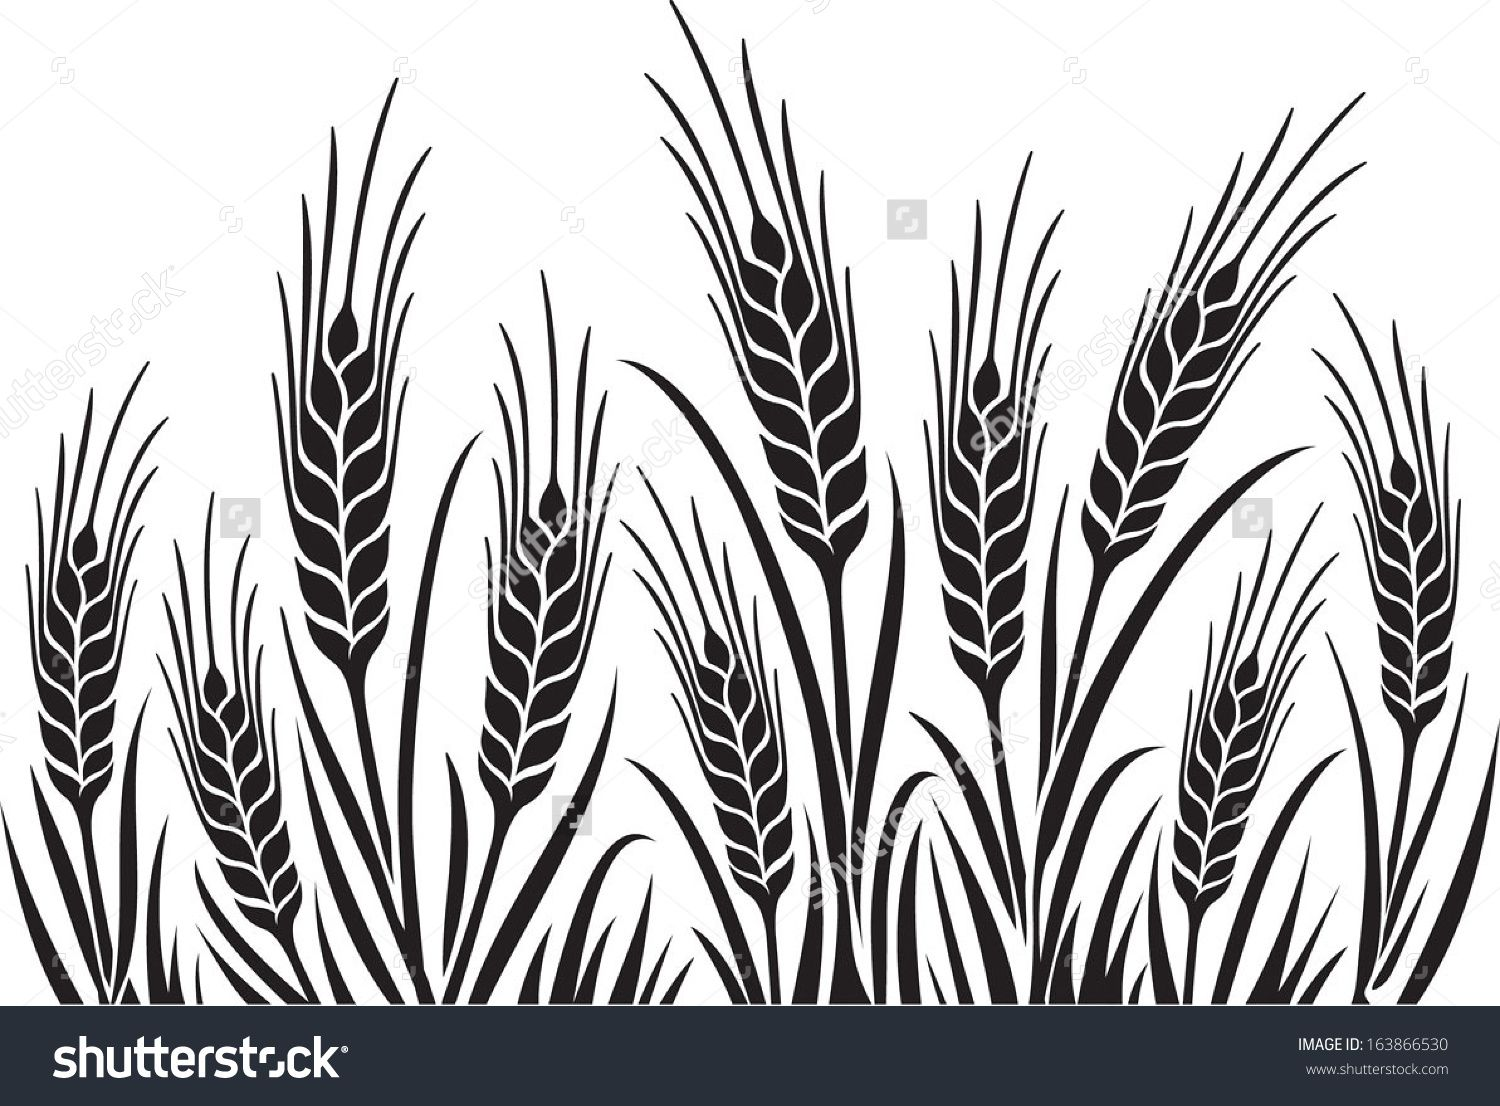 Barley Illustration Field Of Wheat Barley Or Rye Vector Visual